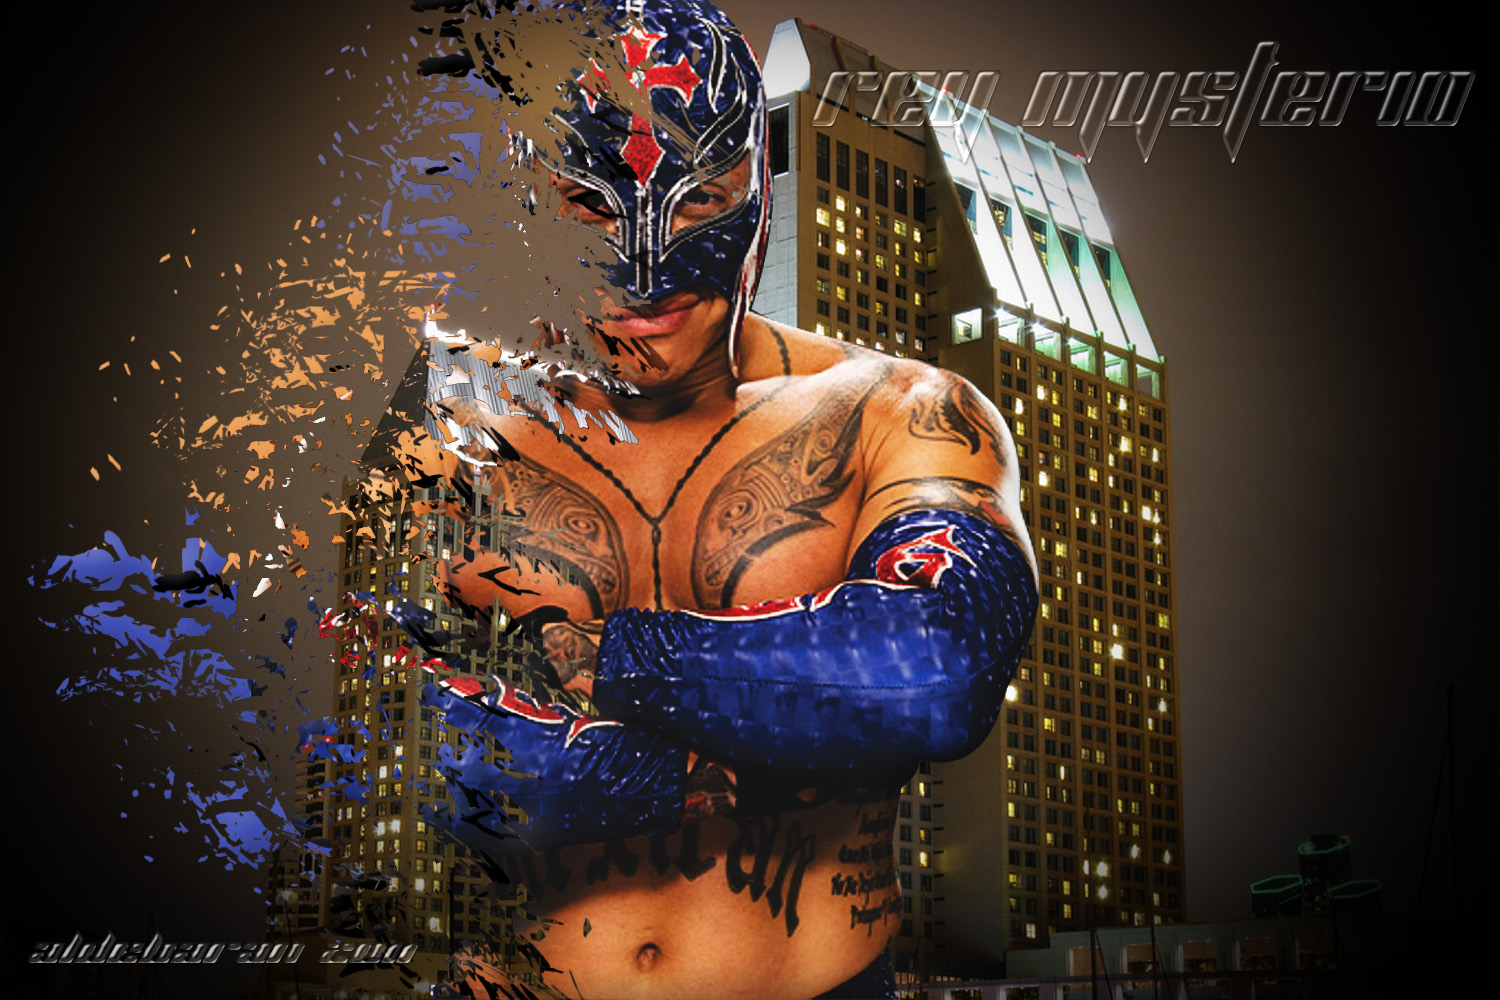 All sports players wwe rey mysterio 619 new hd wallpapers - Wwe 619 images ...